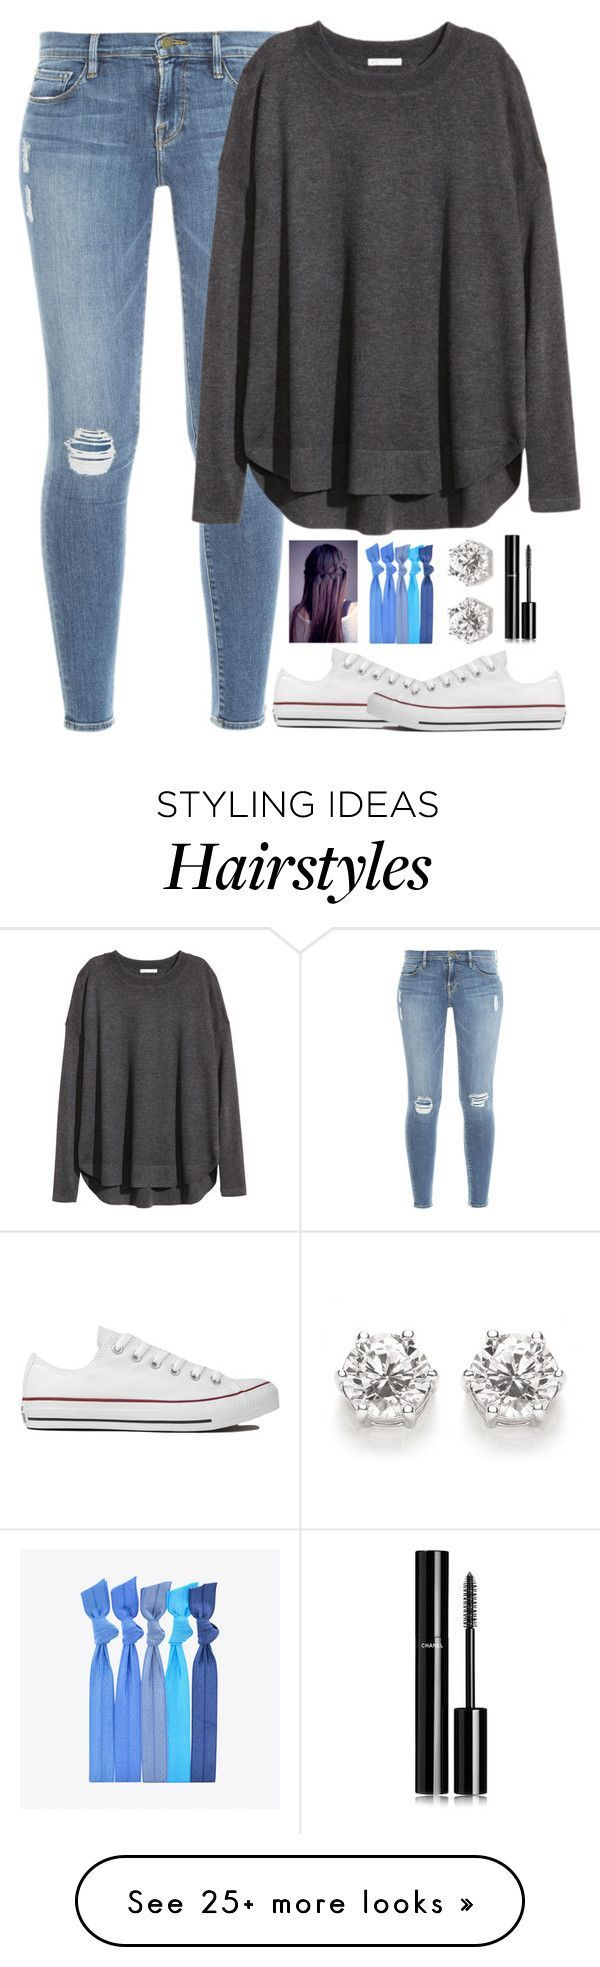 """Untitled #548"" by evieleet on Polyvore featuring Frame Denim, H&M, Converse and Chanel"